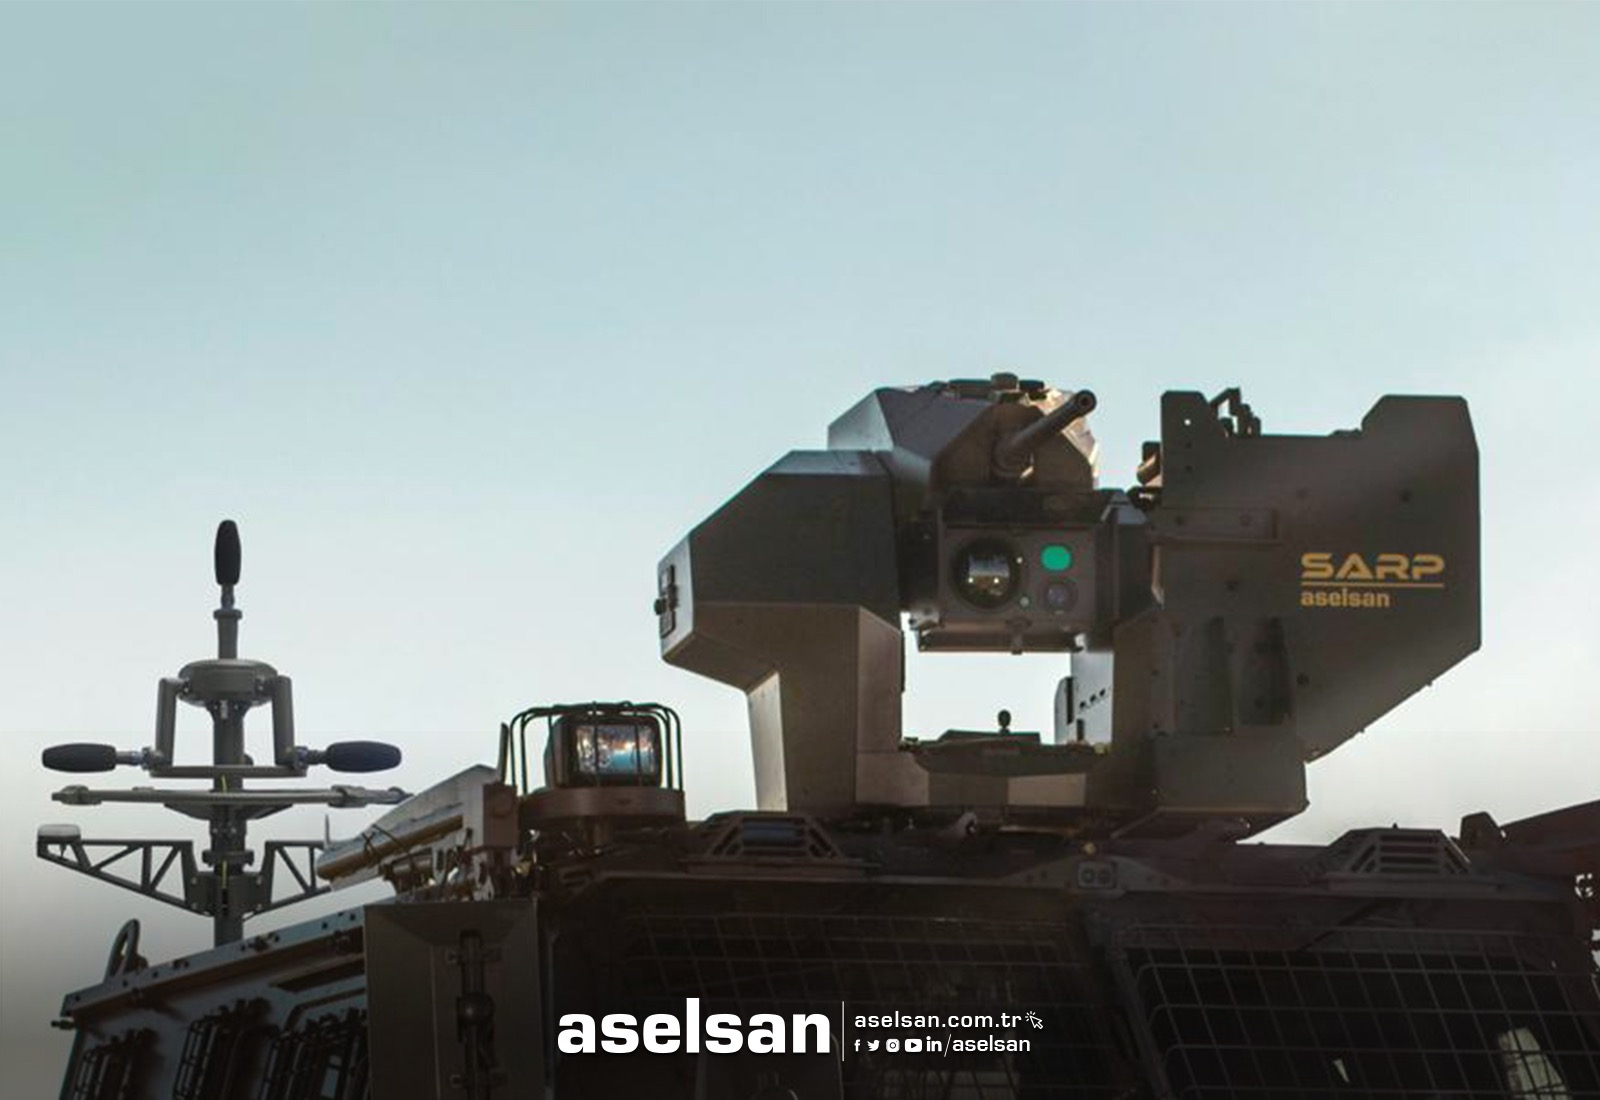 Aselsan Receives Contract for Stabilized Weapon Stations (RCWS) From NATO Member Nation